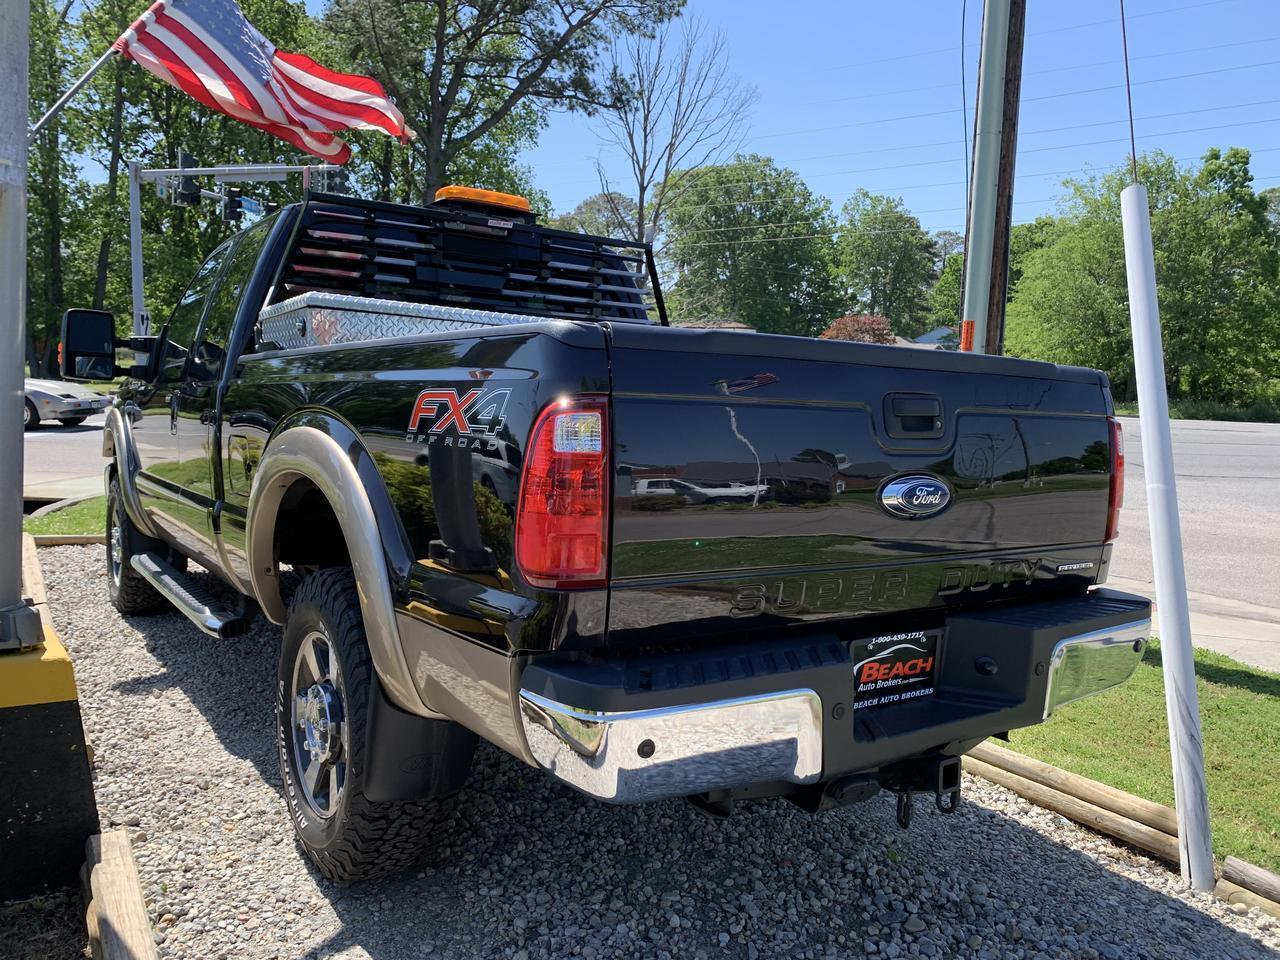 2014 FORD F-250 SUPER DUTY LARIAT SUPERCAB 4X4, WARRANTY, LEATHER, FX4 OFF ROAD PKG, HEATED SEATS, BACKUP CAM! Norfolk VA